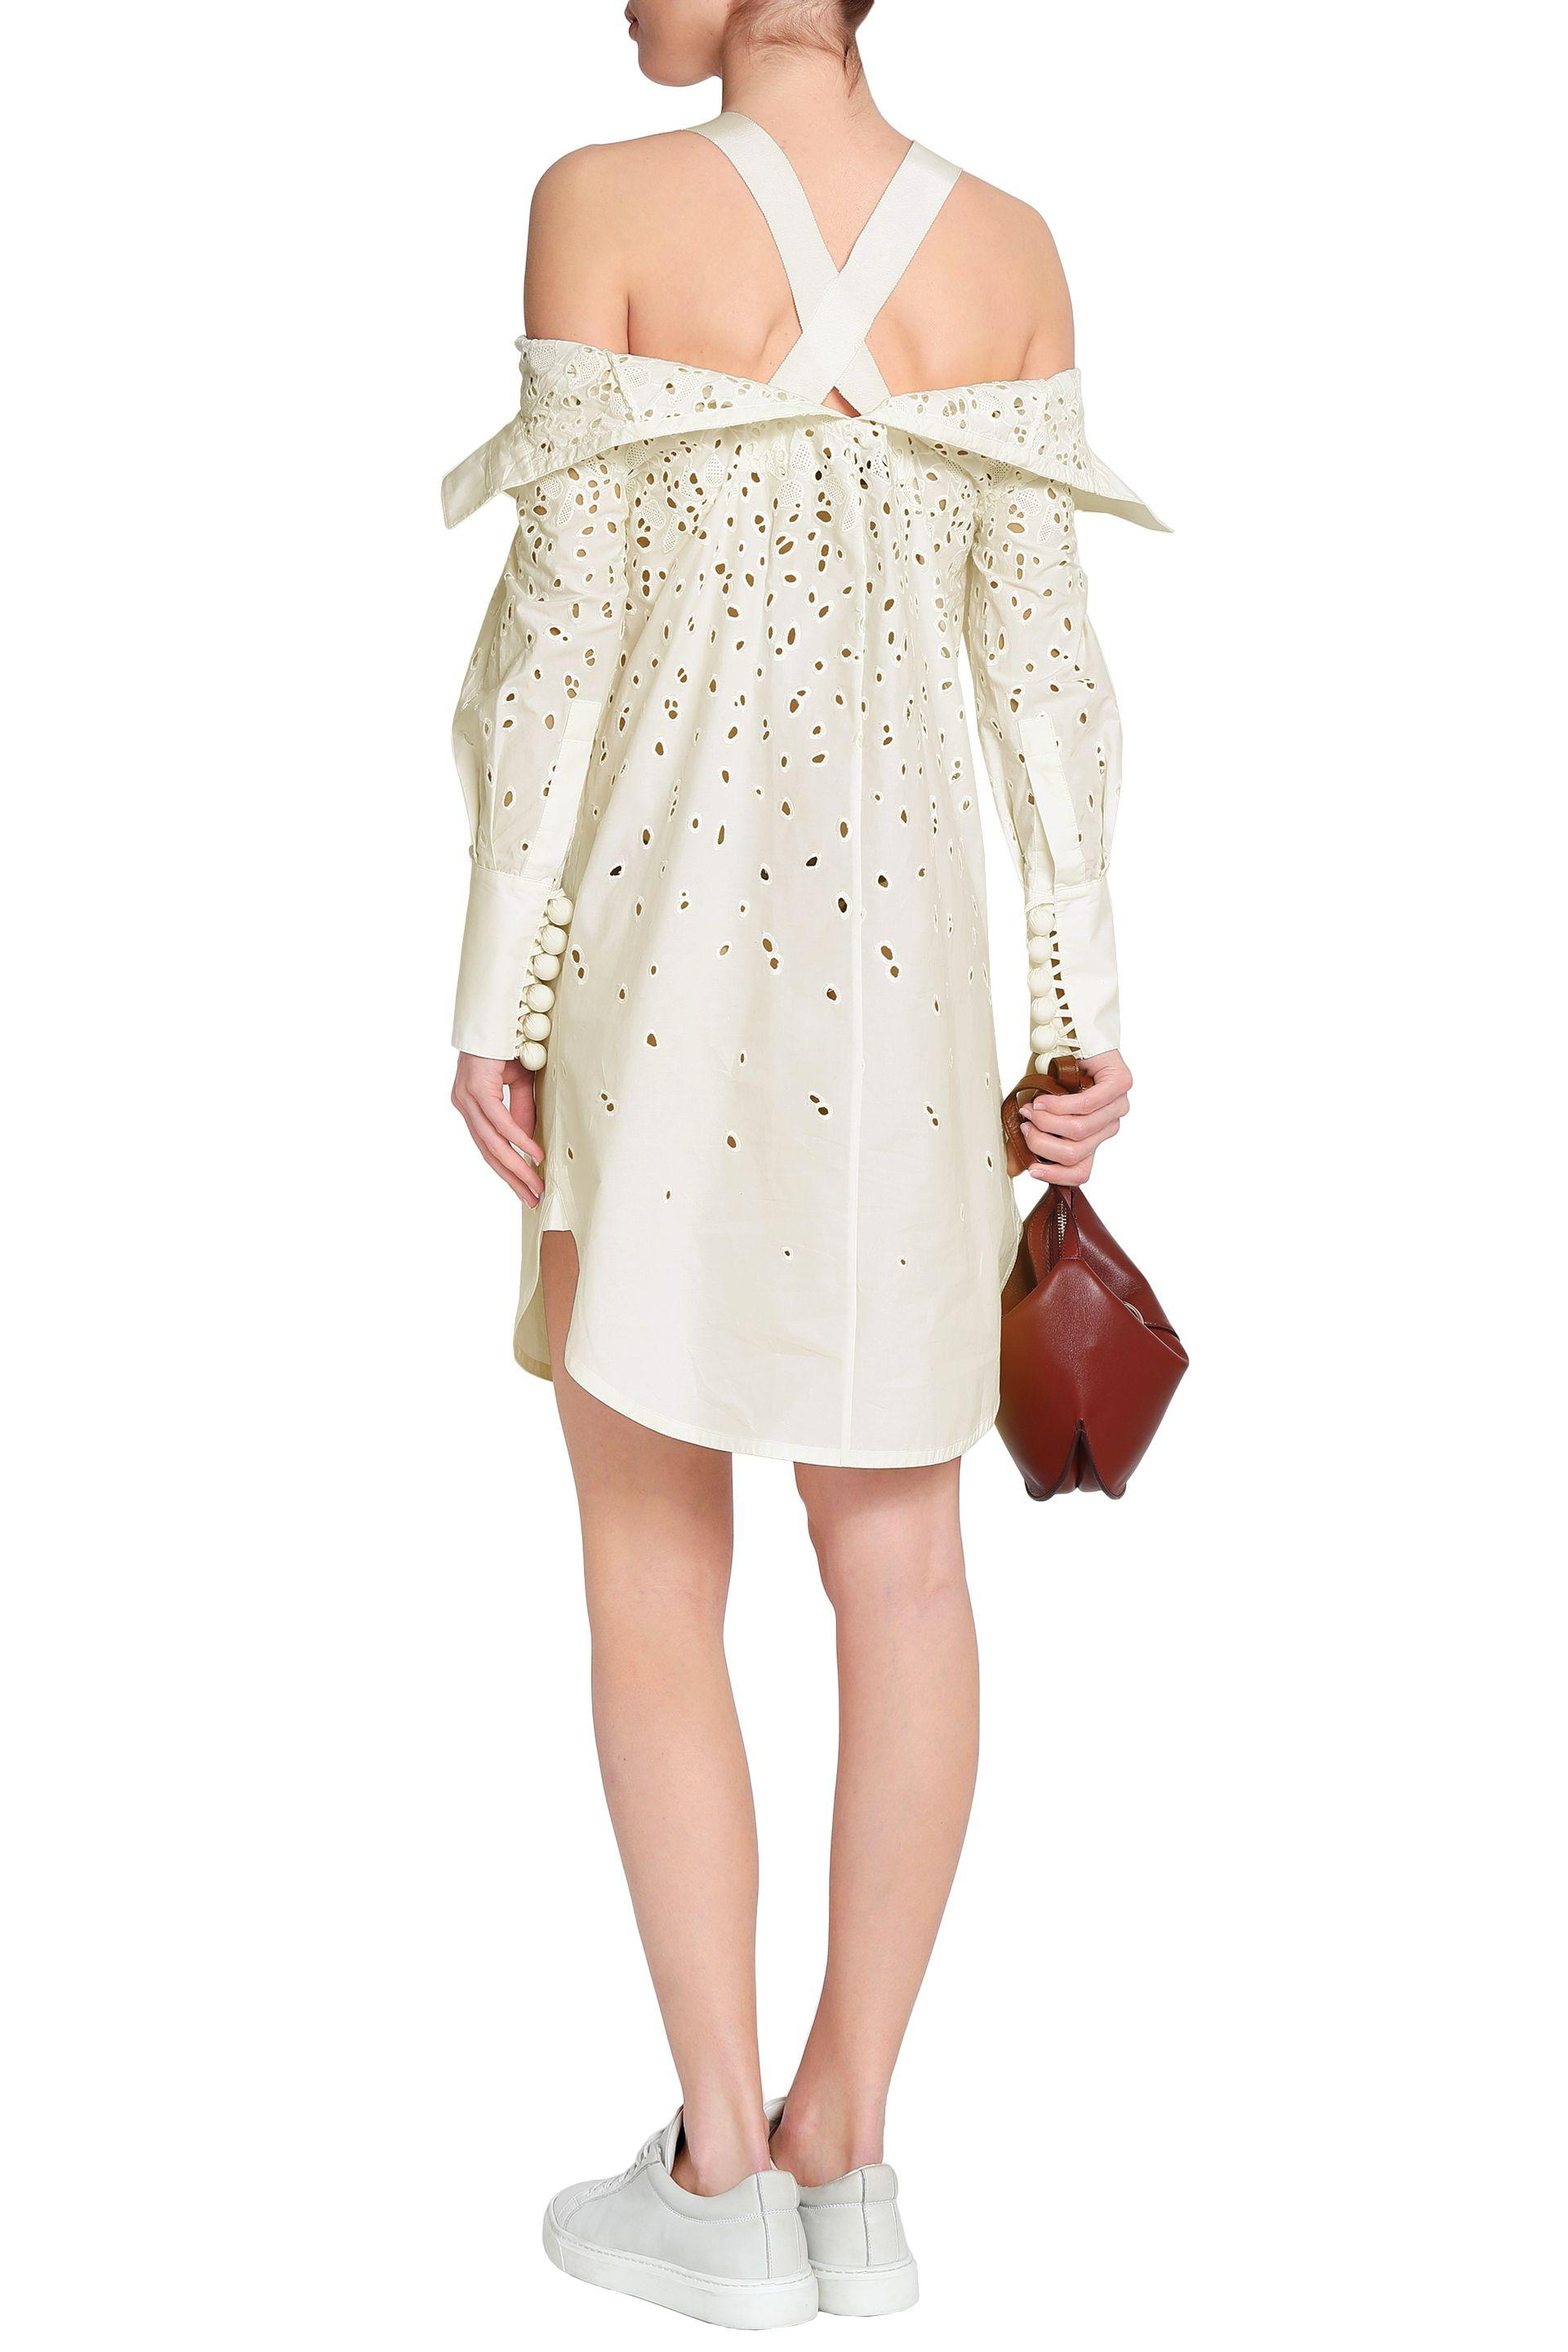 Proenza Schouler Cold-shoulder Broderie Anglaise Cotton-poplin Dress White